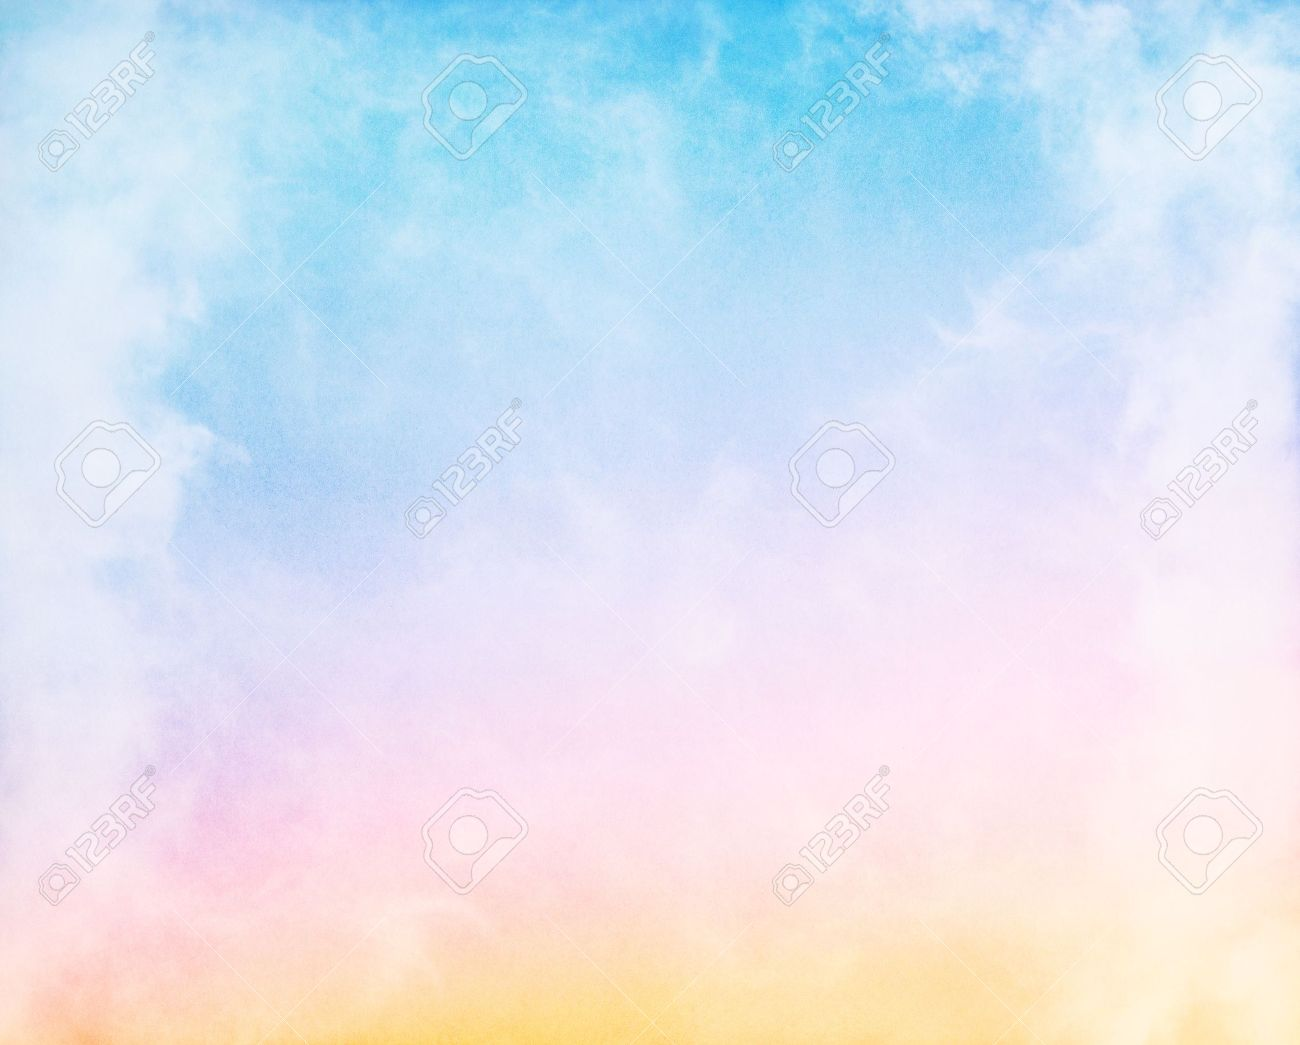 Fog and clouds on a colorful rainbow blue to orange gradient.  Image displays a pleasing paper grain and texture at 100%. Stock Photo - 13116393